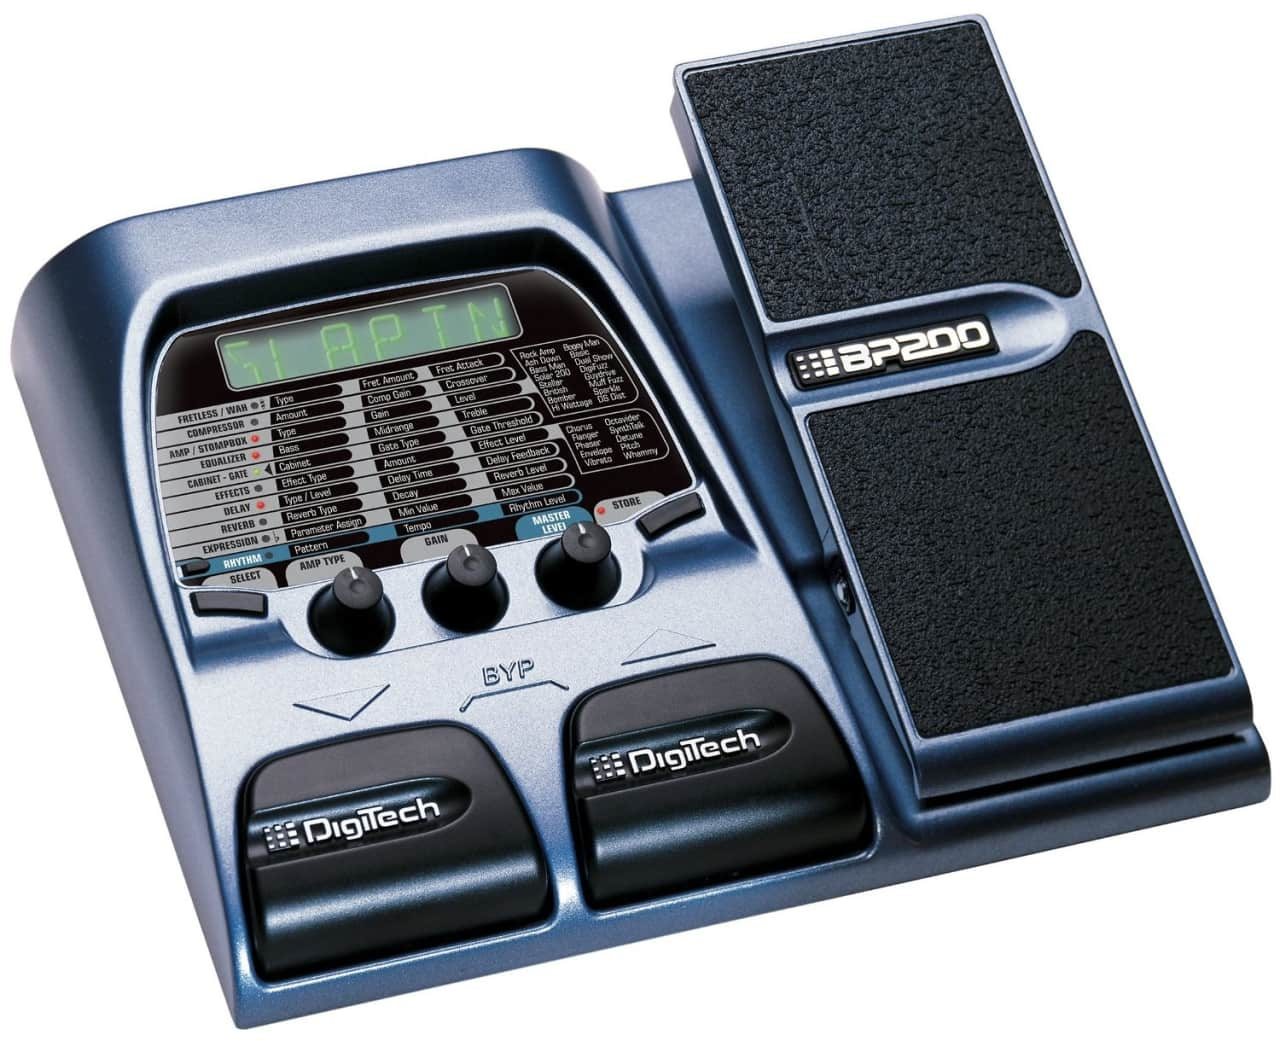 digitech bp200 bass multi effects processor with expression reverb. Black Bedroom Furniture Sets. Home Design Ideas